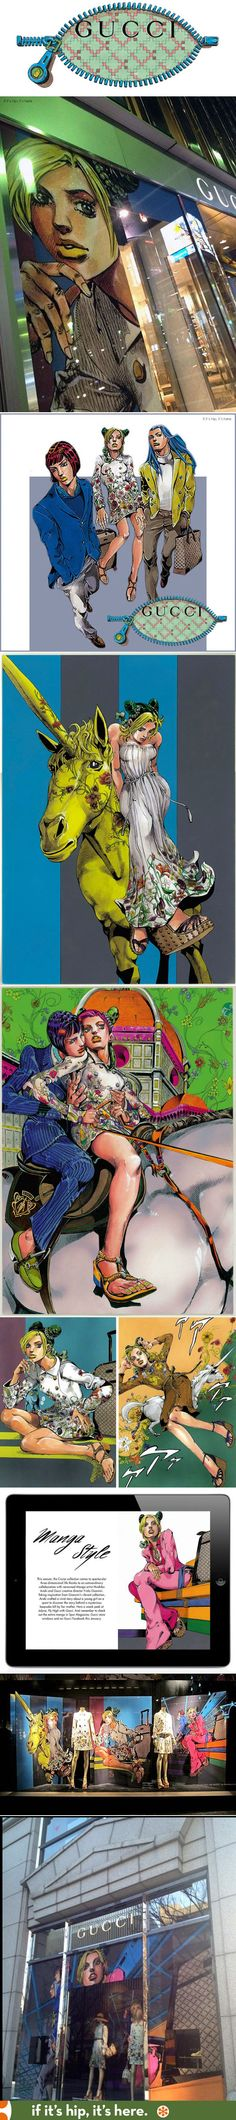 Gucci Goes Manga in this collaboration with Hirohiko Araki. | http://www.ifitshipitshere.com/gucci-goes-manga/